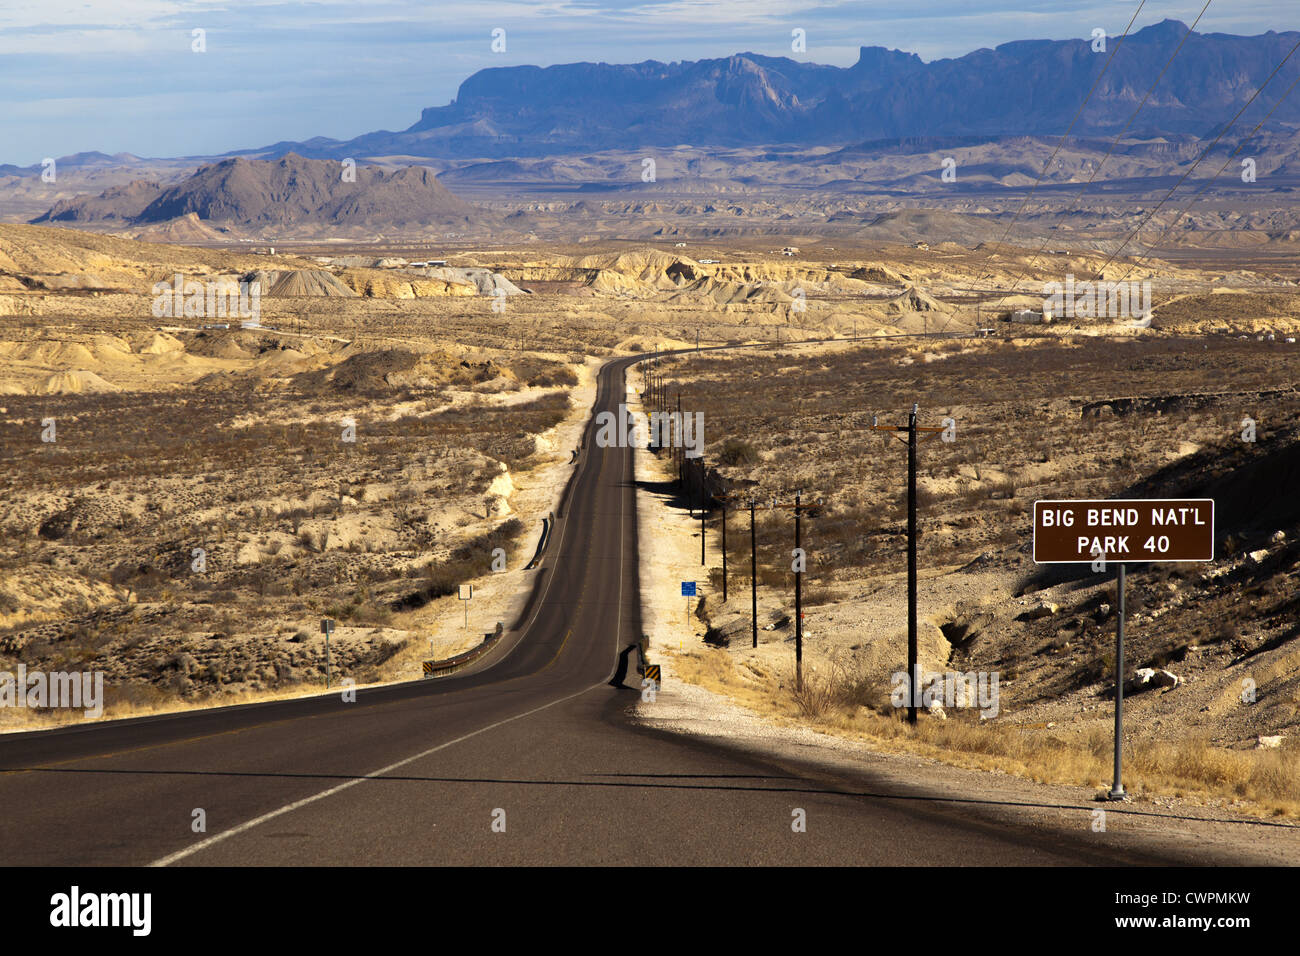 Long straight desert road vanshing into the distance leading to Big Bend National Park, Texas, United States - Stock Image